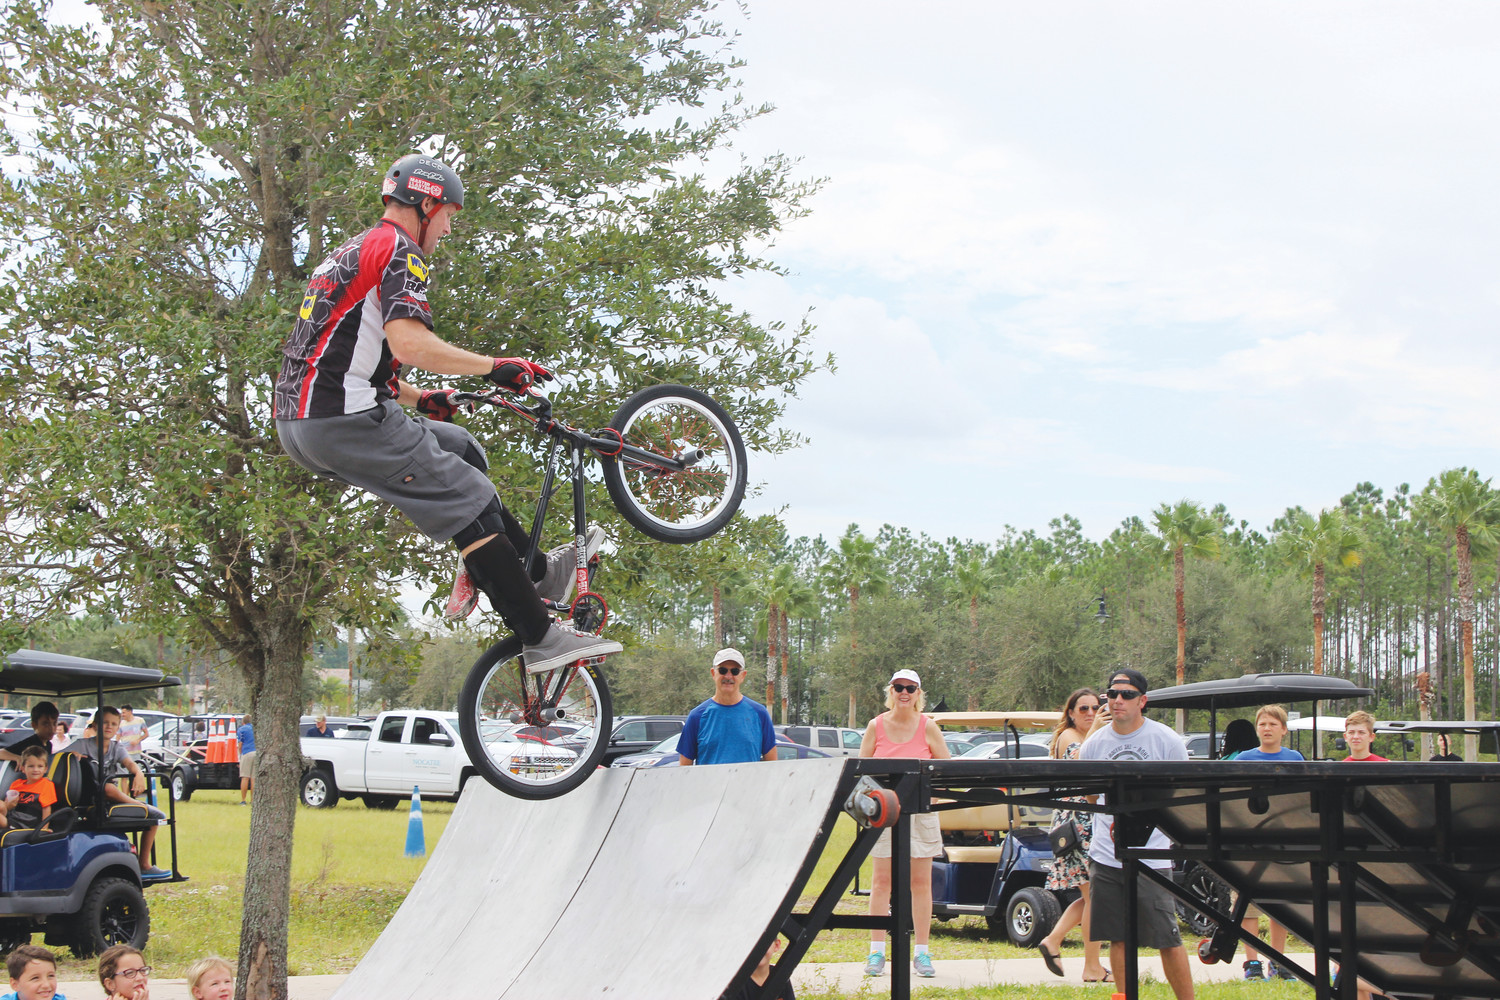 A member of Perfection on Wheel's BMX Pros Trick Team performs a half-pipe trick in front of the crowd at the Nocatee Farmers Market Sept. 16. In addition to this action-packed show, visitors at the market enjoyed checking out over 70 vendors offering items such as organic produce, herbs, spices, unique foods, crafts, jewelry and more. The next Nocatee Farmers Market is Oct. 21, inviting the community to get into the fall spirit with Nocatee's annual Fall Festival. The event takes place the third Saturday of each month on the Farmers Market Field at Nocatee Town Center.